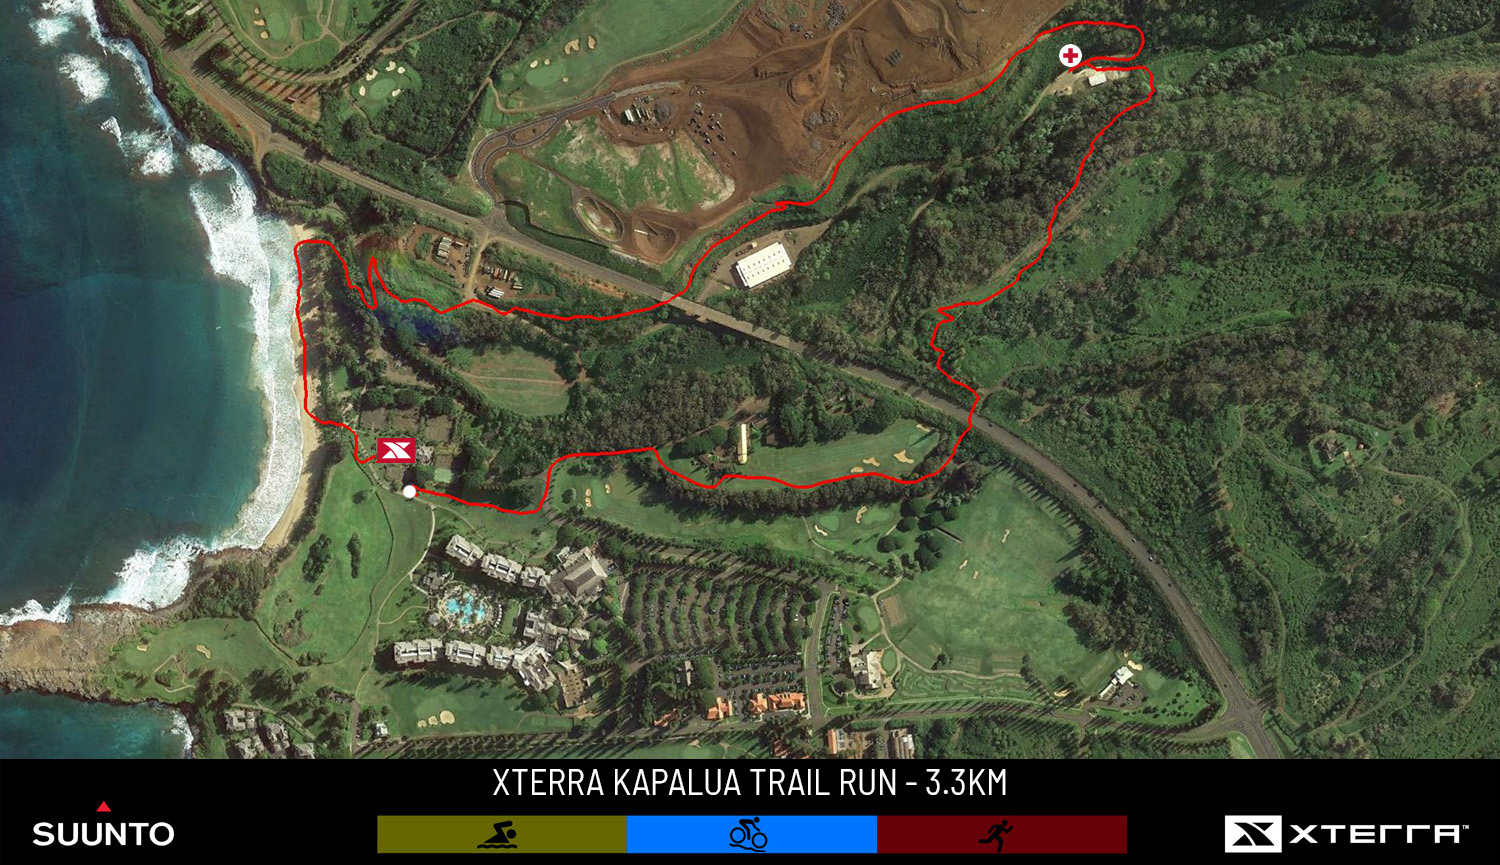 XTERRA Kapalua 3.3km Trail Run